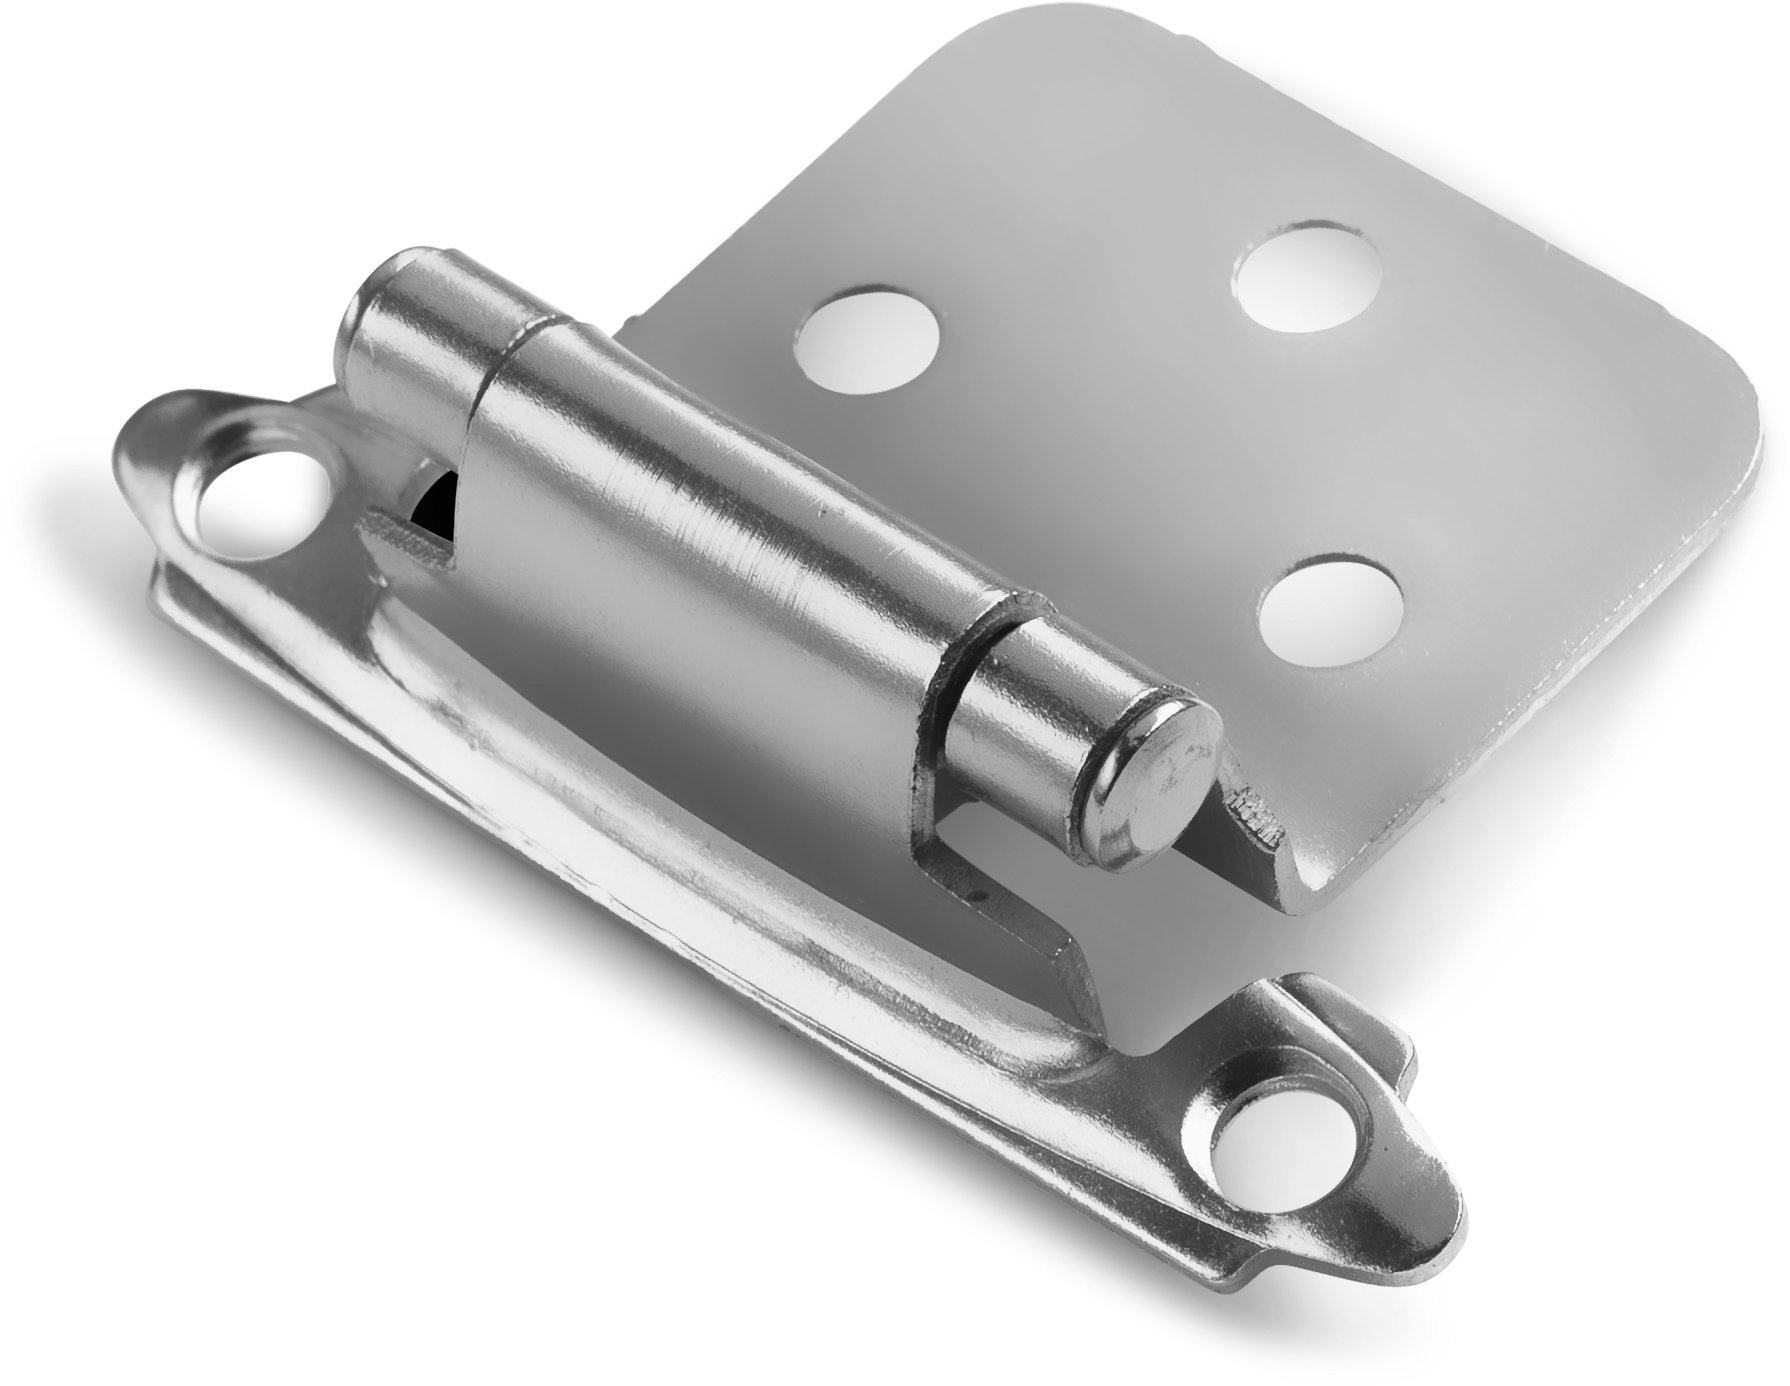 Berlin Modisch Overlay Cabinet Hinge 10 Pair (20 Units) Self-Closing Decorative, Face Mount, for Variable Overlay Kitchen Cabinet Doors Satin Nickel Finish, with Sound Dampening Door Bumpers by Berlin Modisch (Image #6)